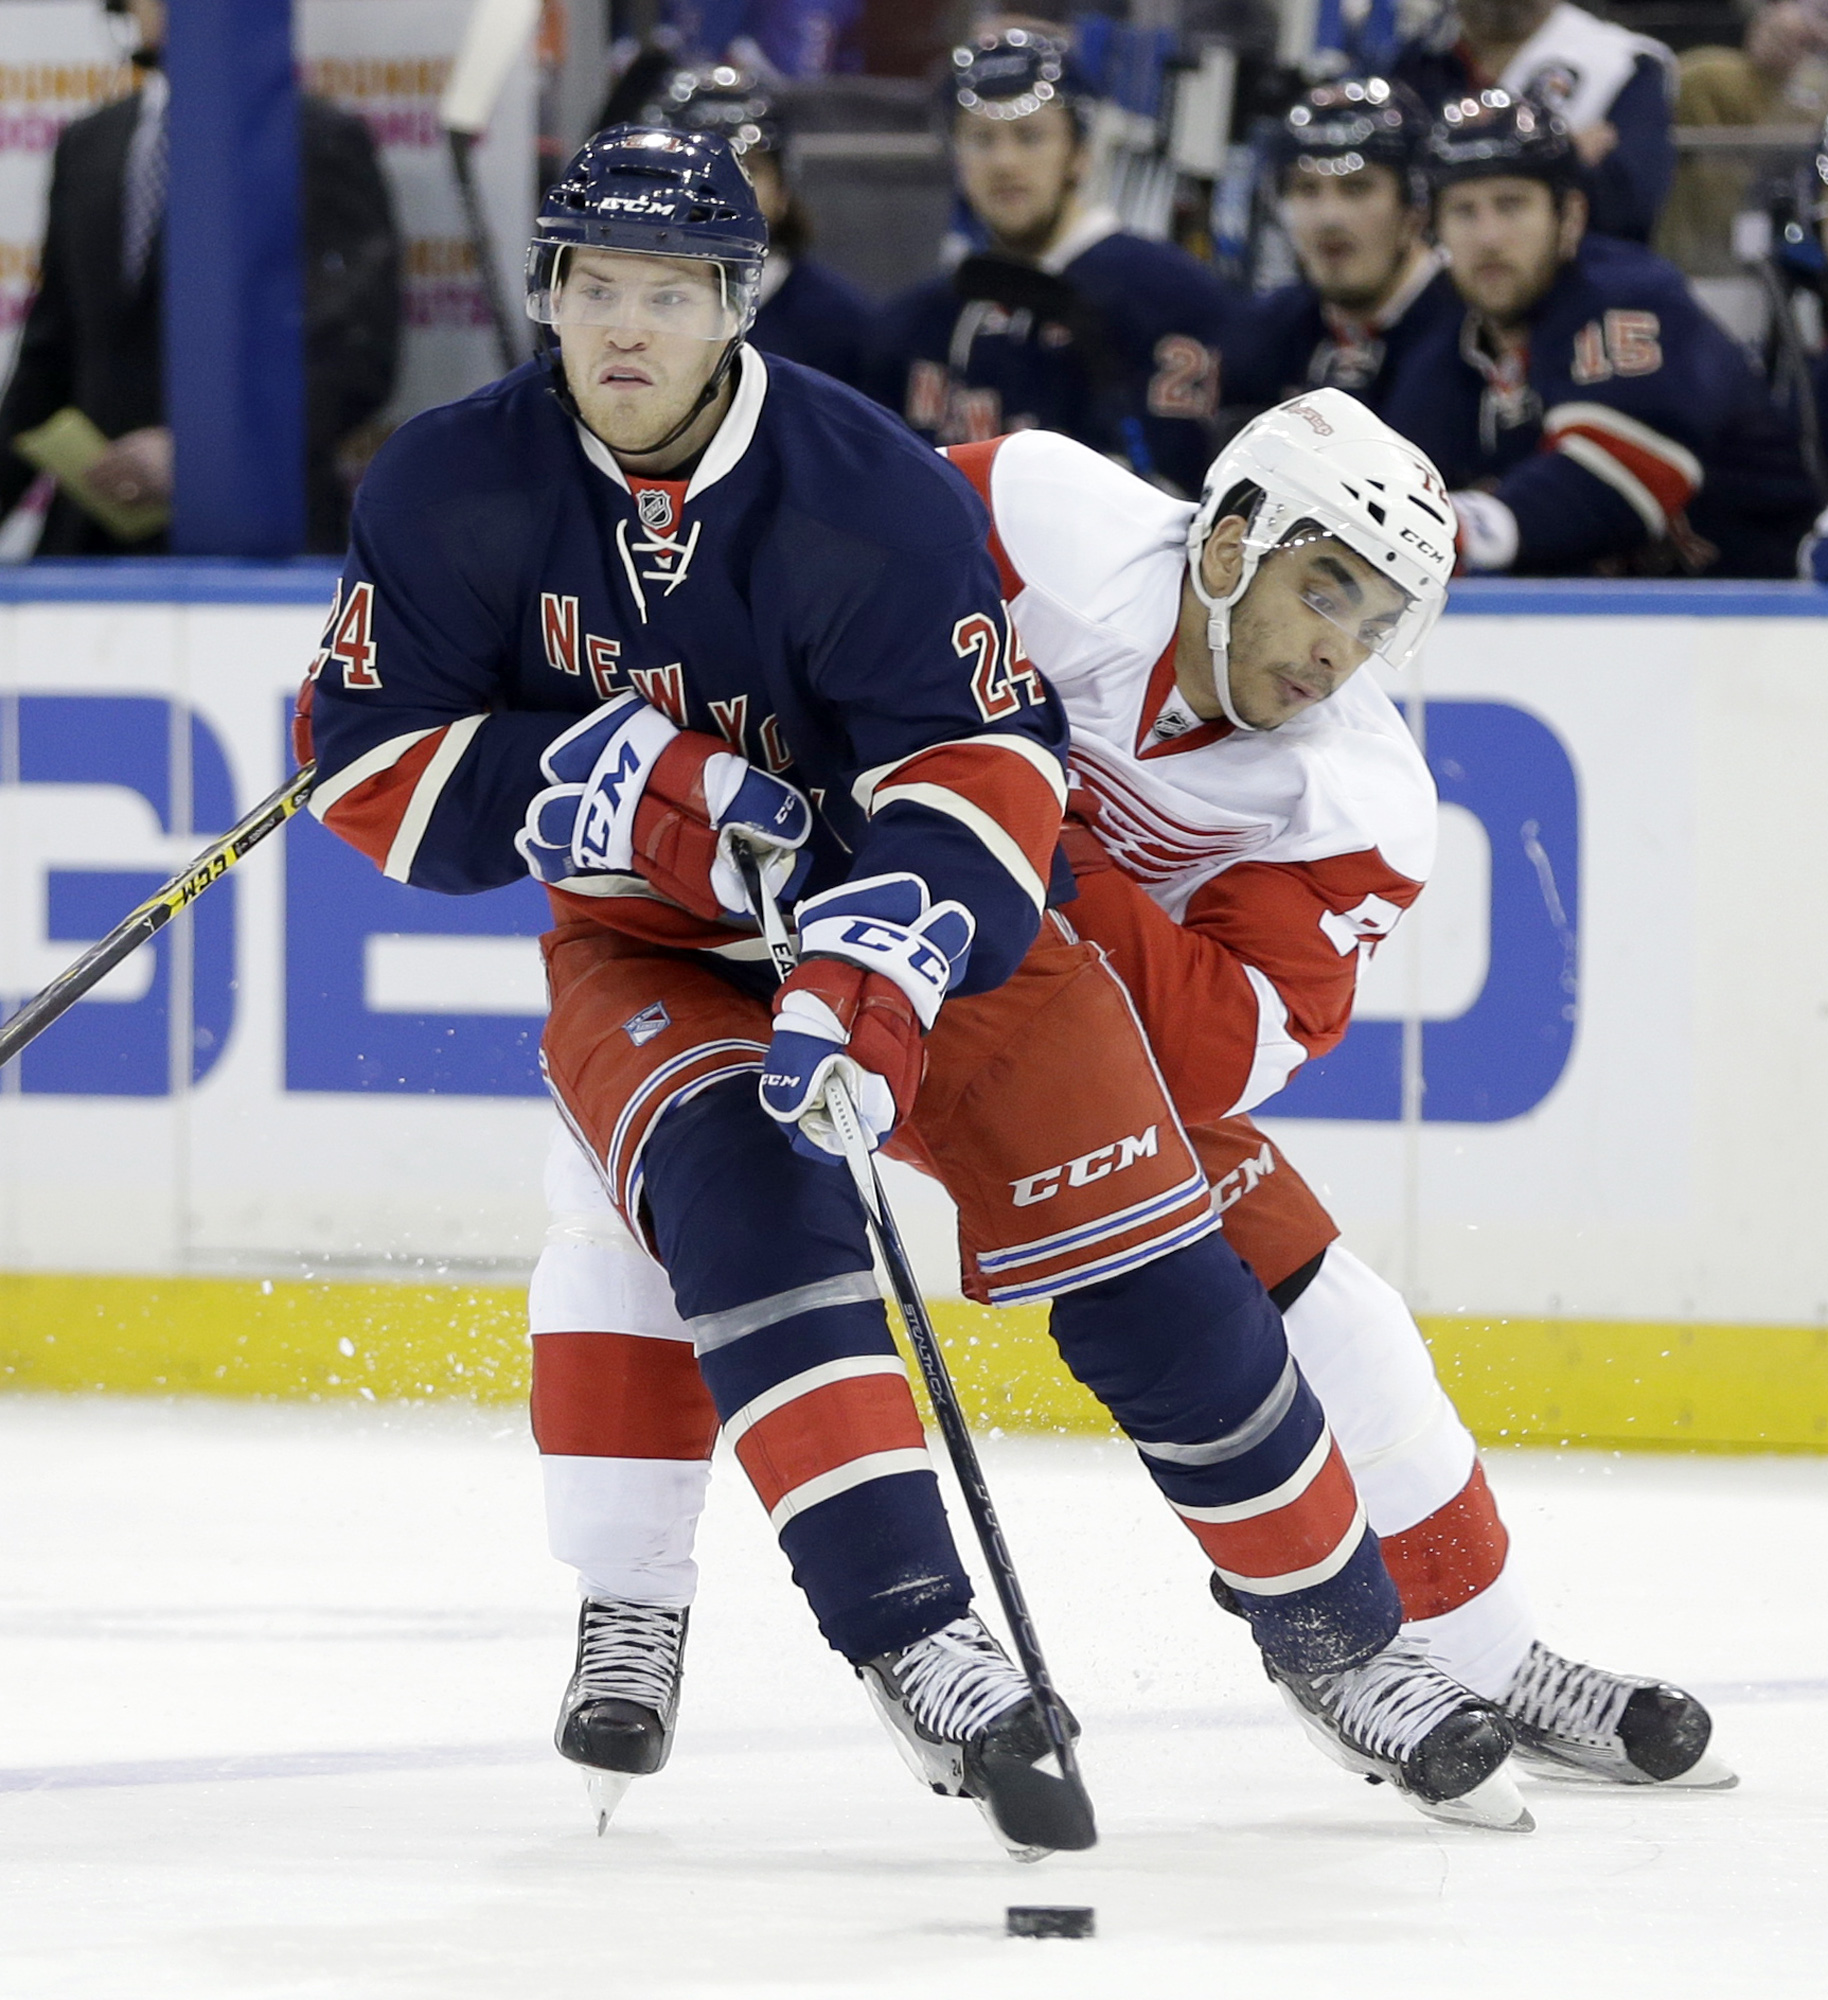 Detroit Red Wings' Andreas Athanasiou, right, tries to get the puck from New York Rangers' Oscar Lindberg during the first period of the NHL hockey game, Sunday, Feb. 21, 2016, in New York. (AP Photo/Seth Wenig)